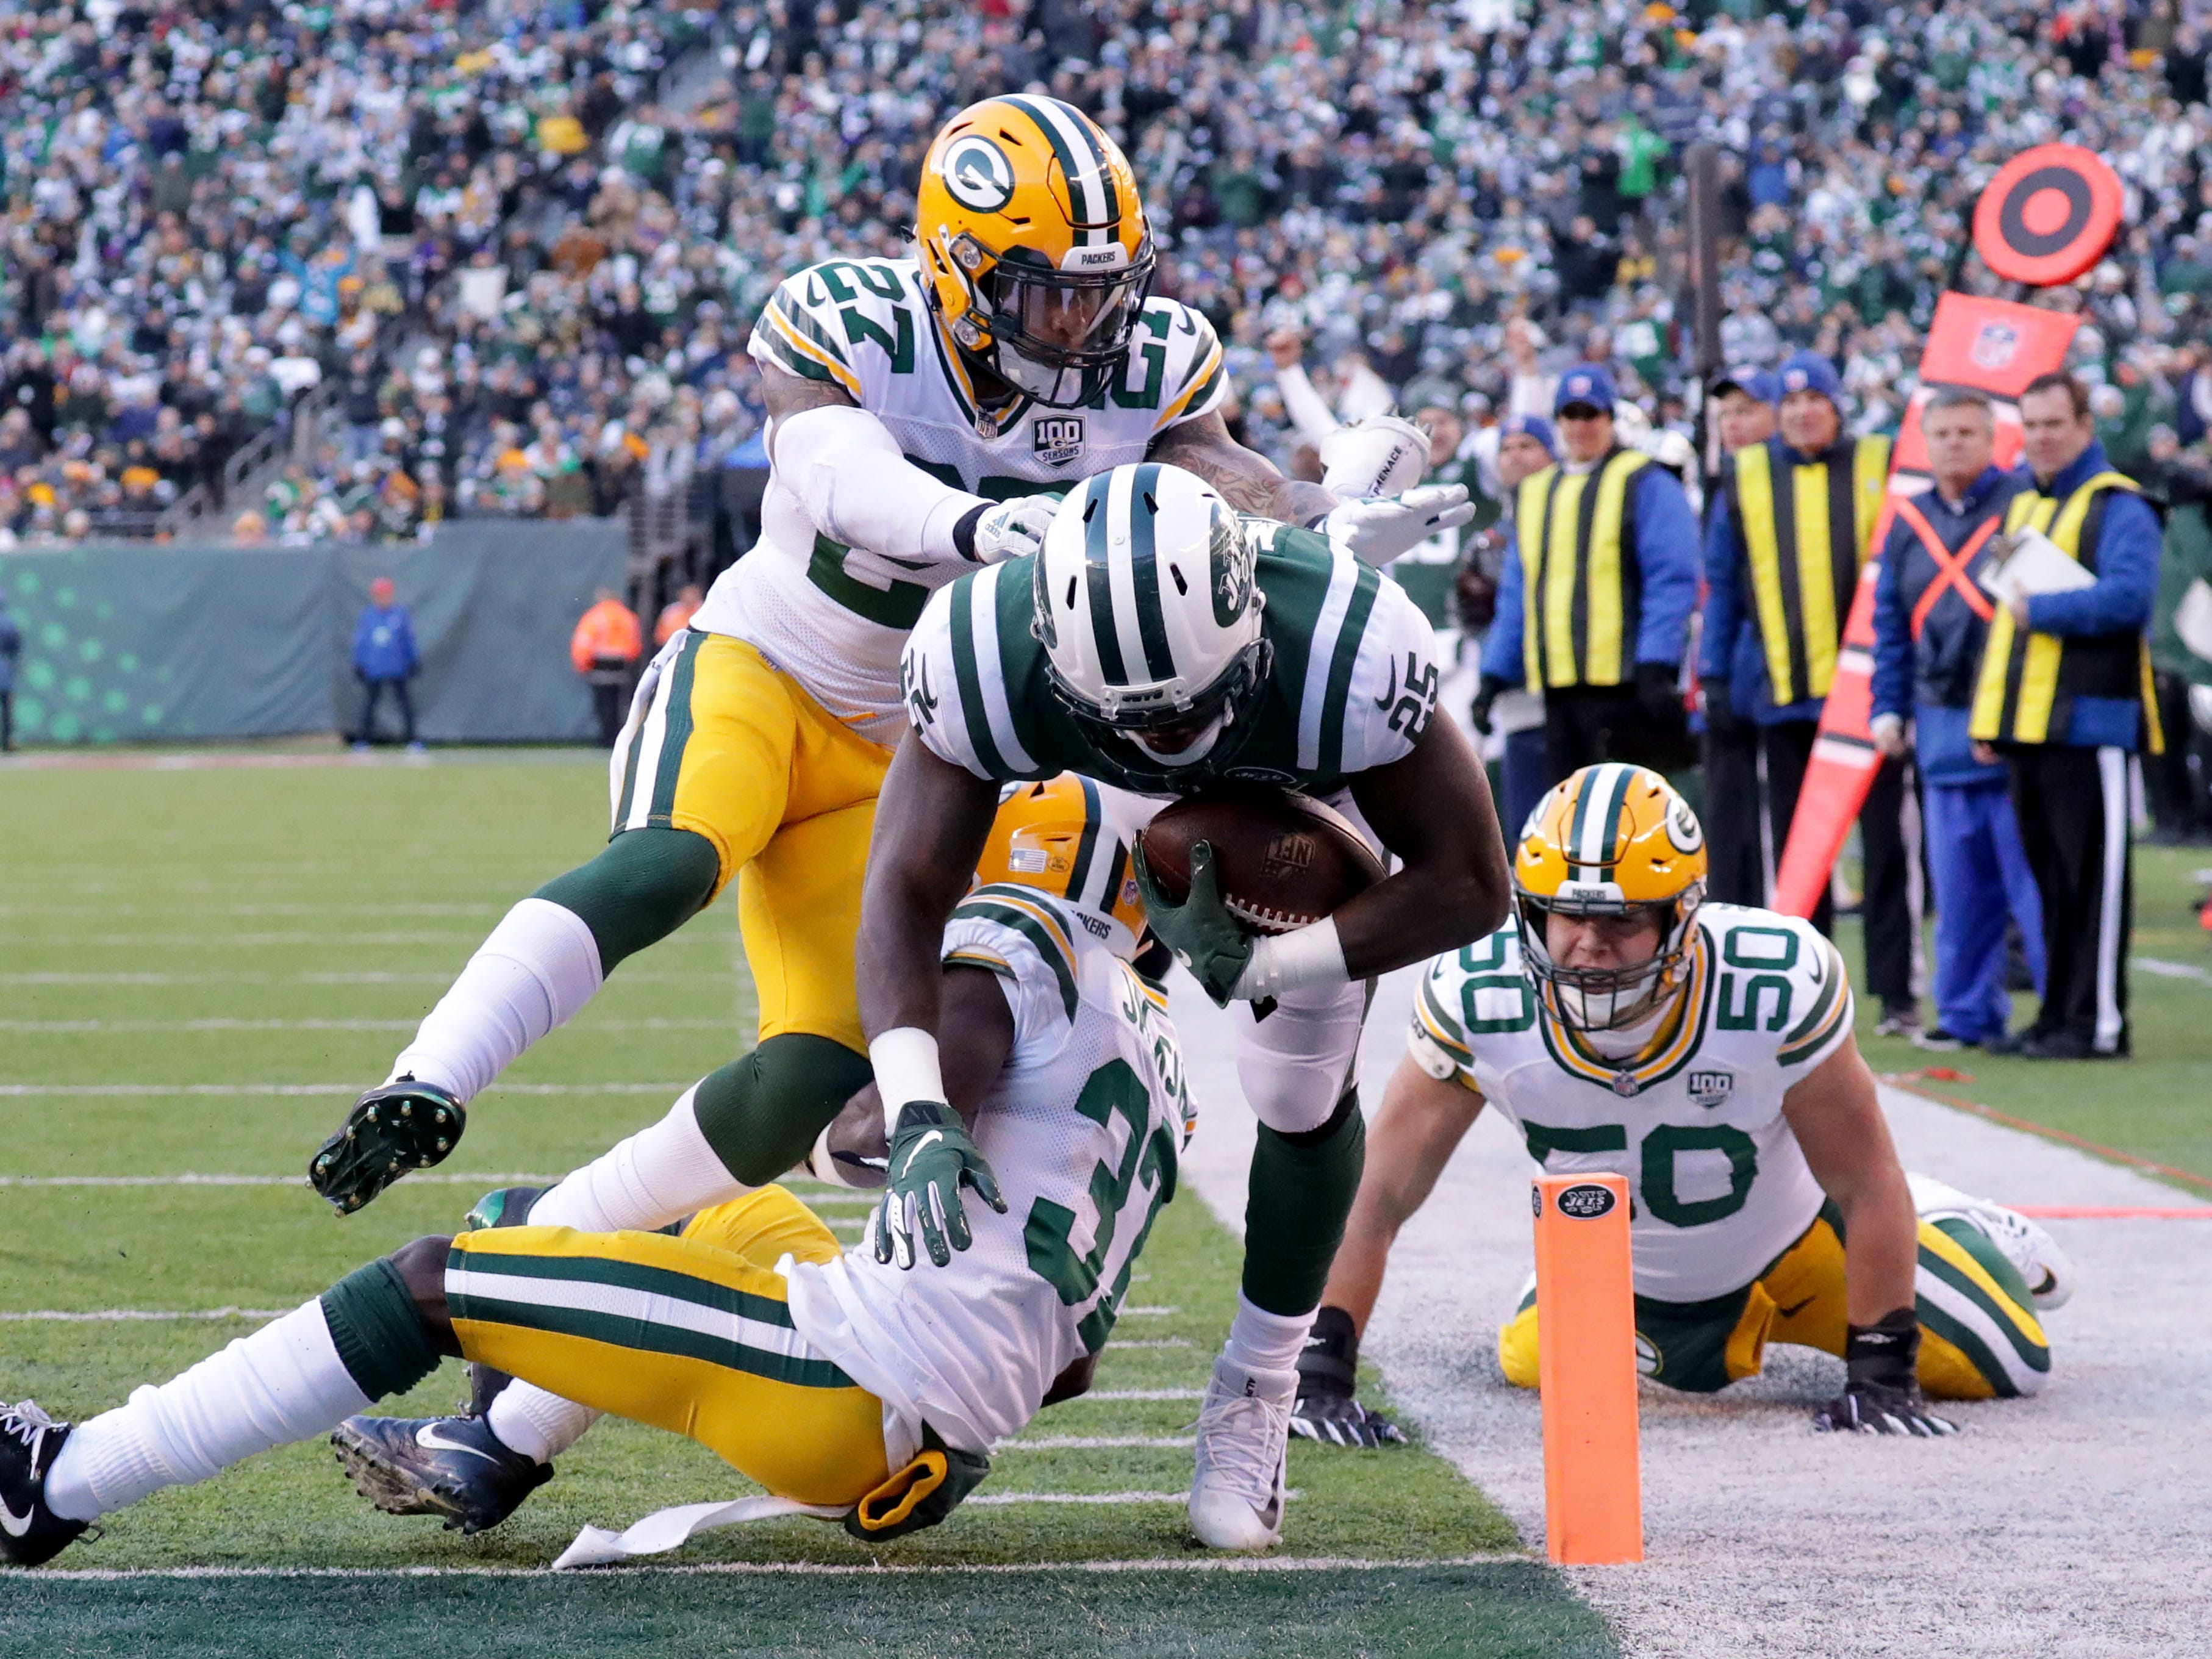 New York Jets' Elijah McGuire scores a touchdown  against Green Bay Packers' Josh Jones (27), Josh Jackson (37) and Blake Martinez (50) during the 2nd half of Packers 44-38 overtime win against the New York Jets at MetLife Stadium Sunday, Dec. 23, 2018, in East Rutherford.